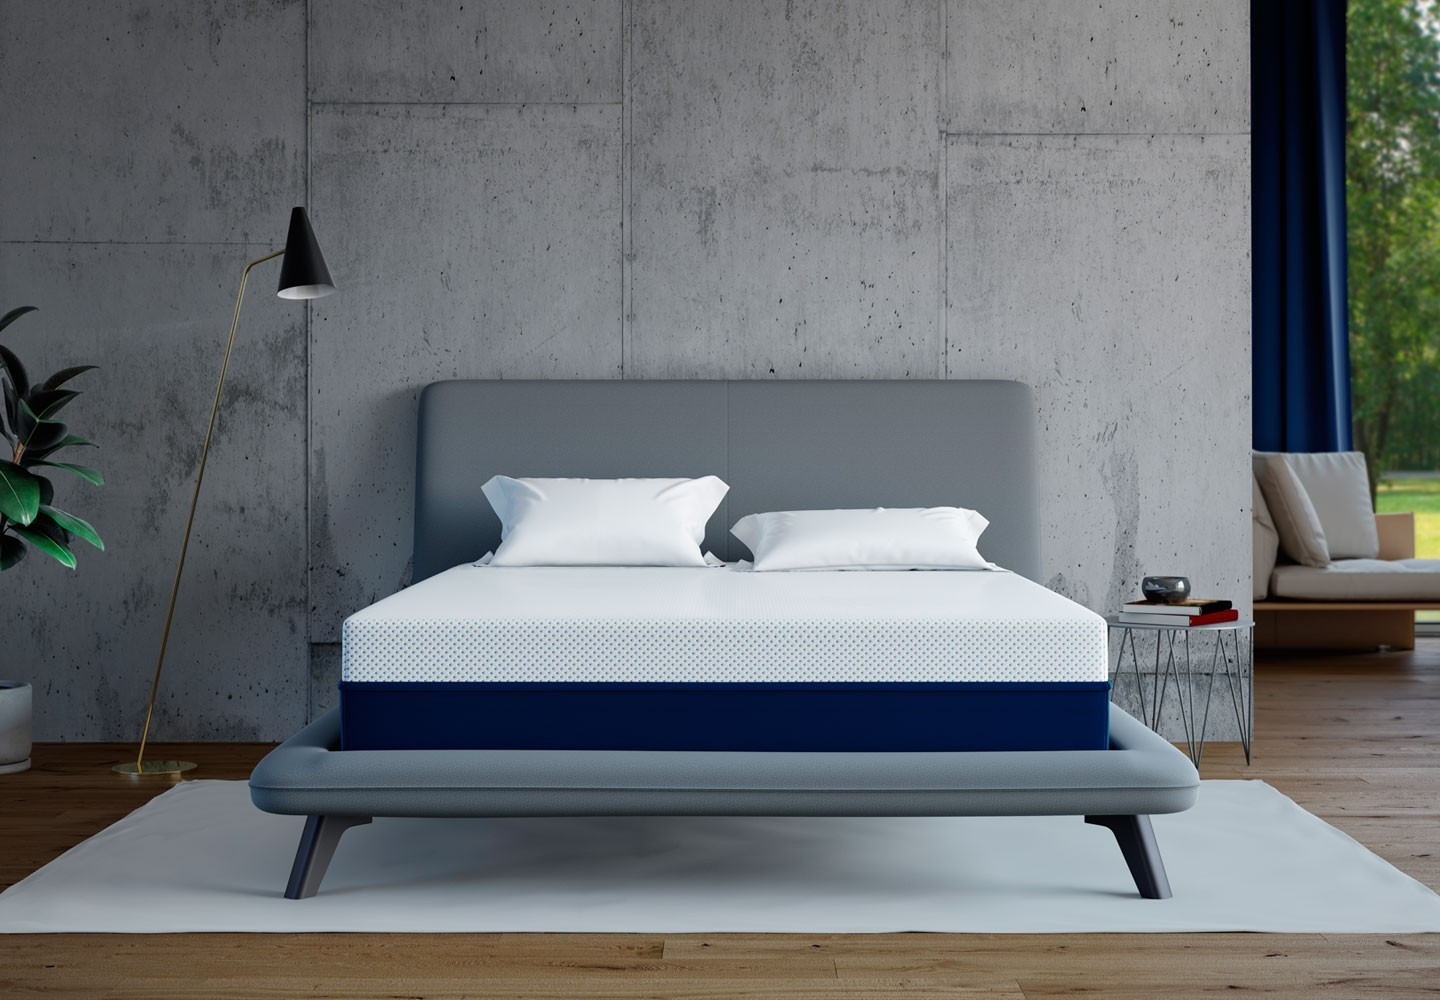 Amerisleep AS2 mattress